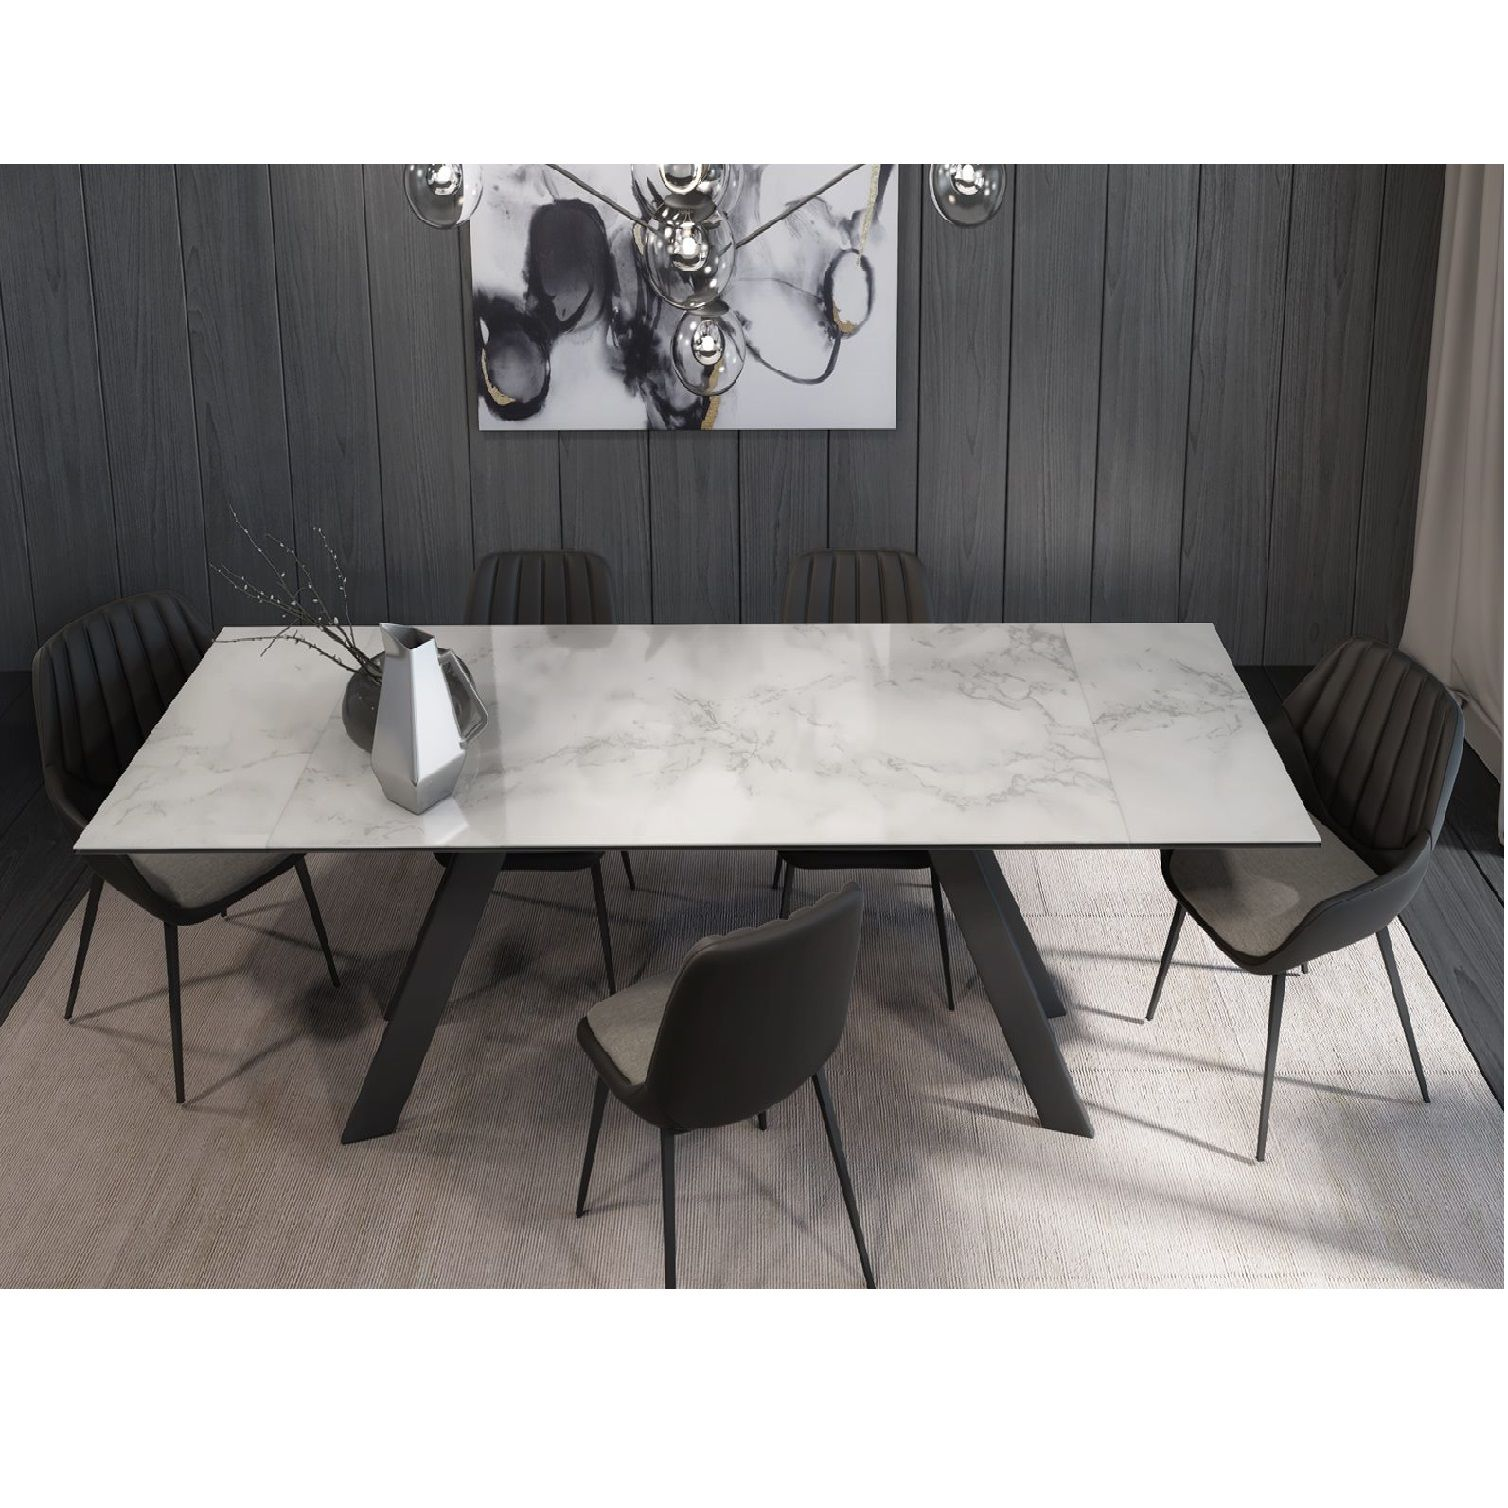 Oliver Extendable Dining Table テーブル